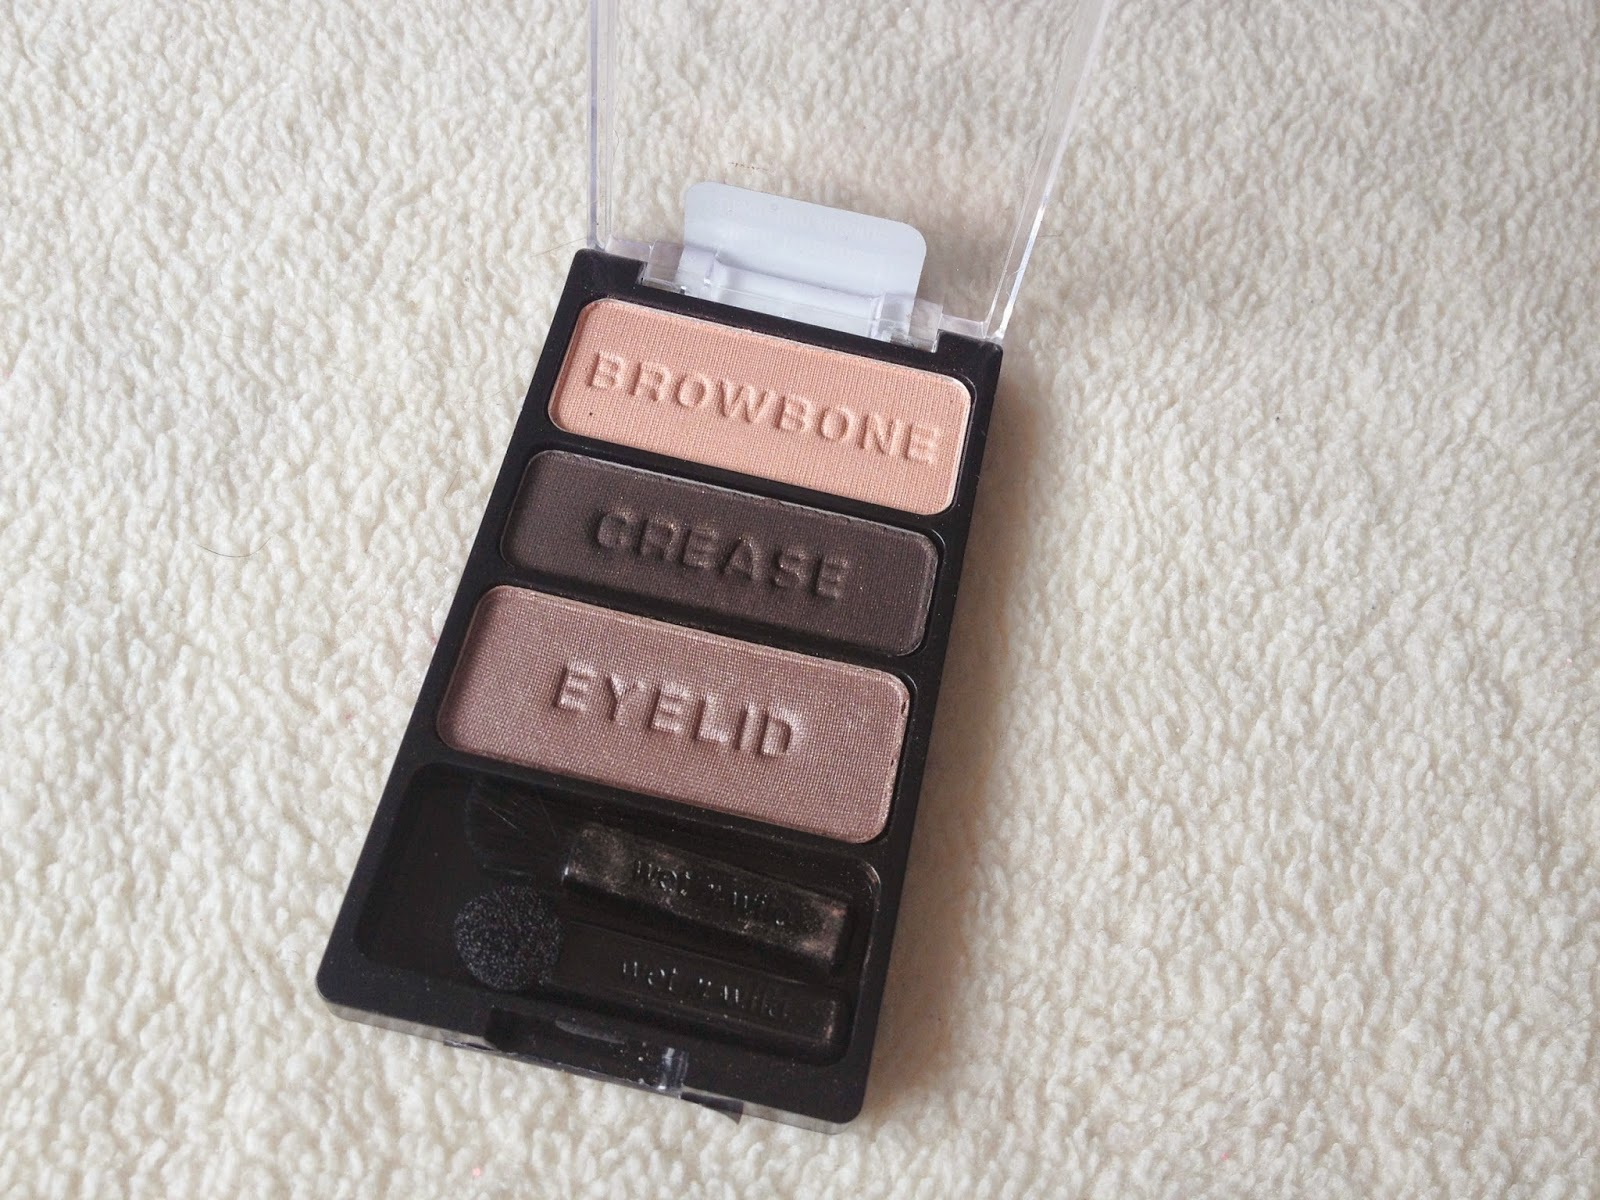 Wet n Wild Silent Treatment Trio Palette